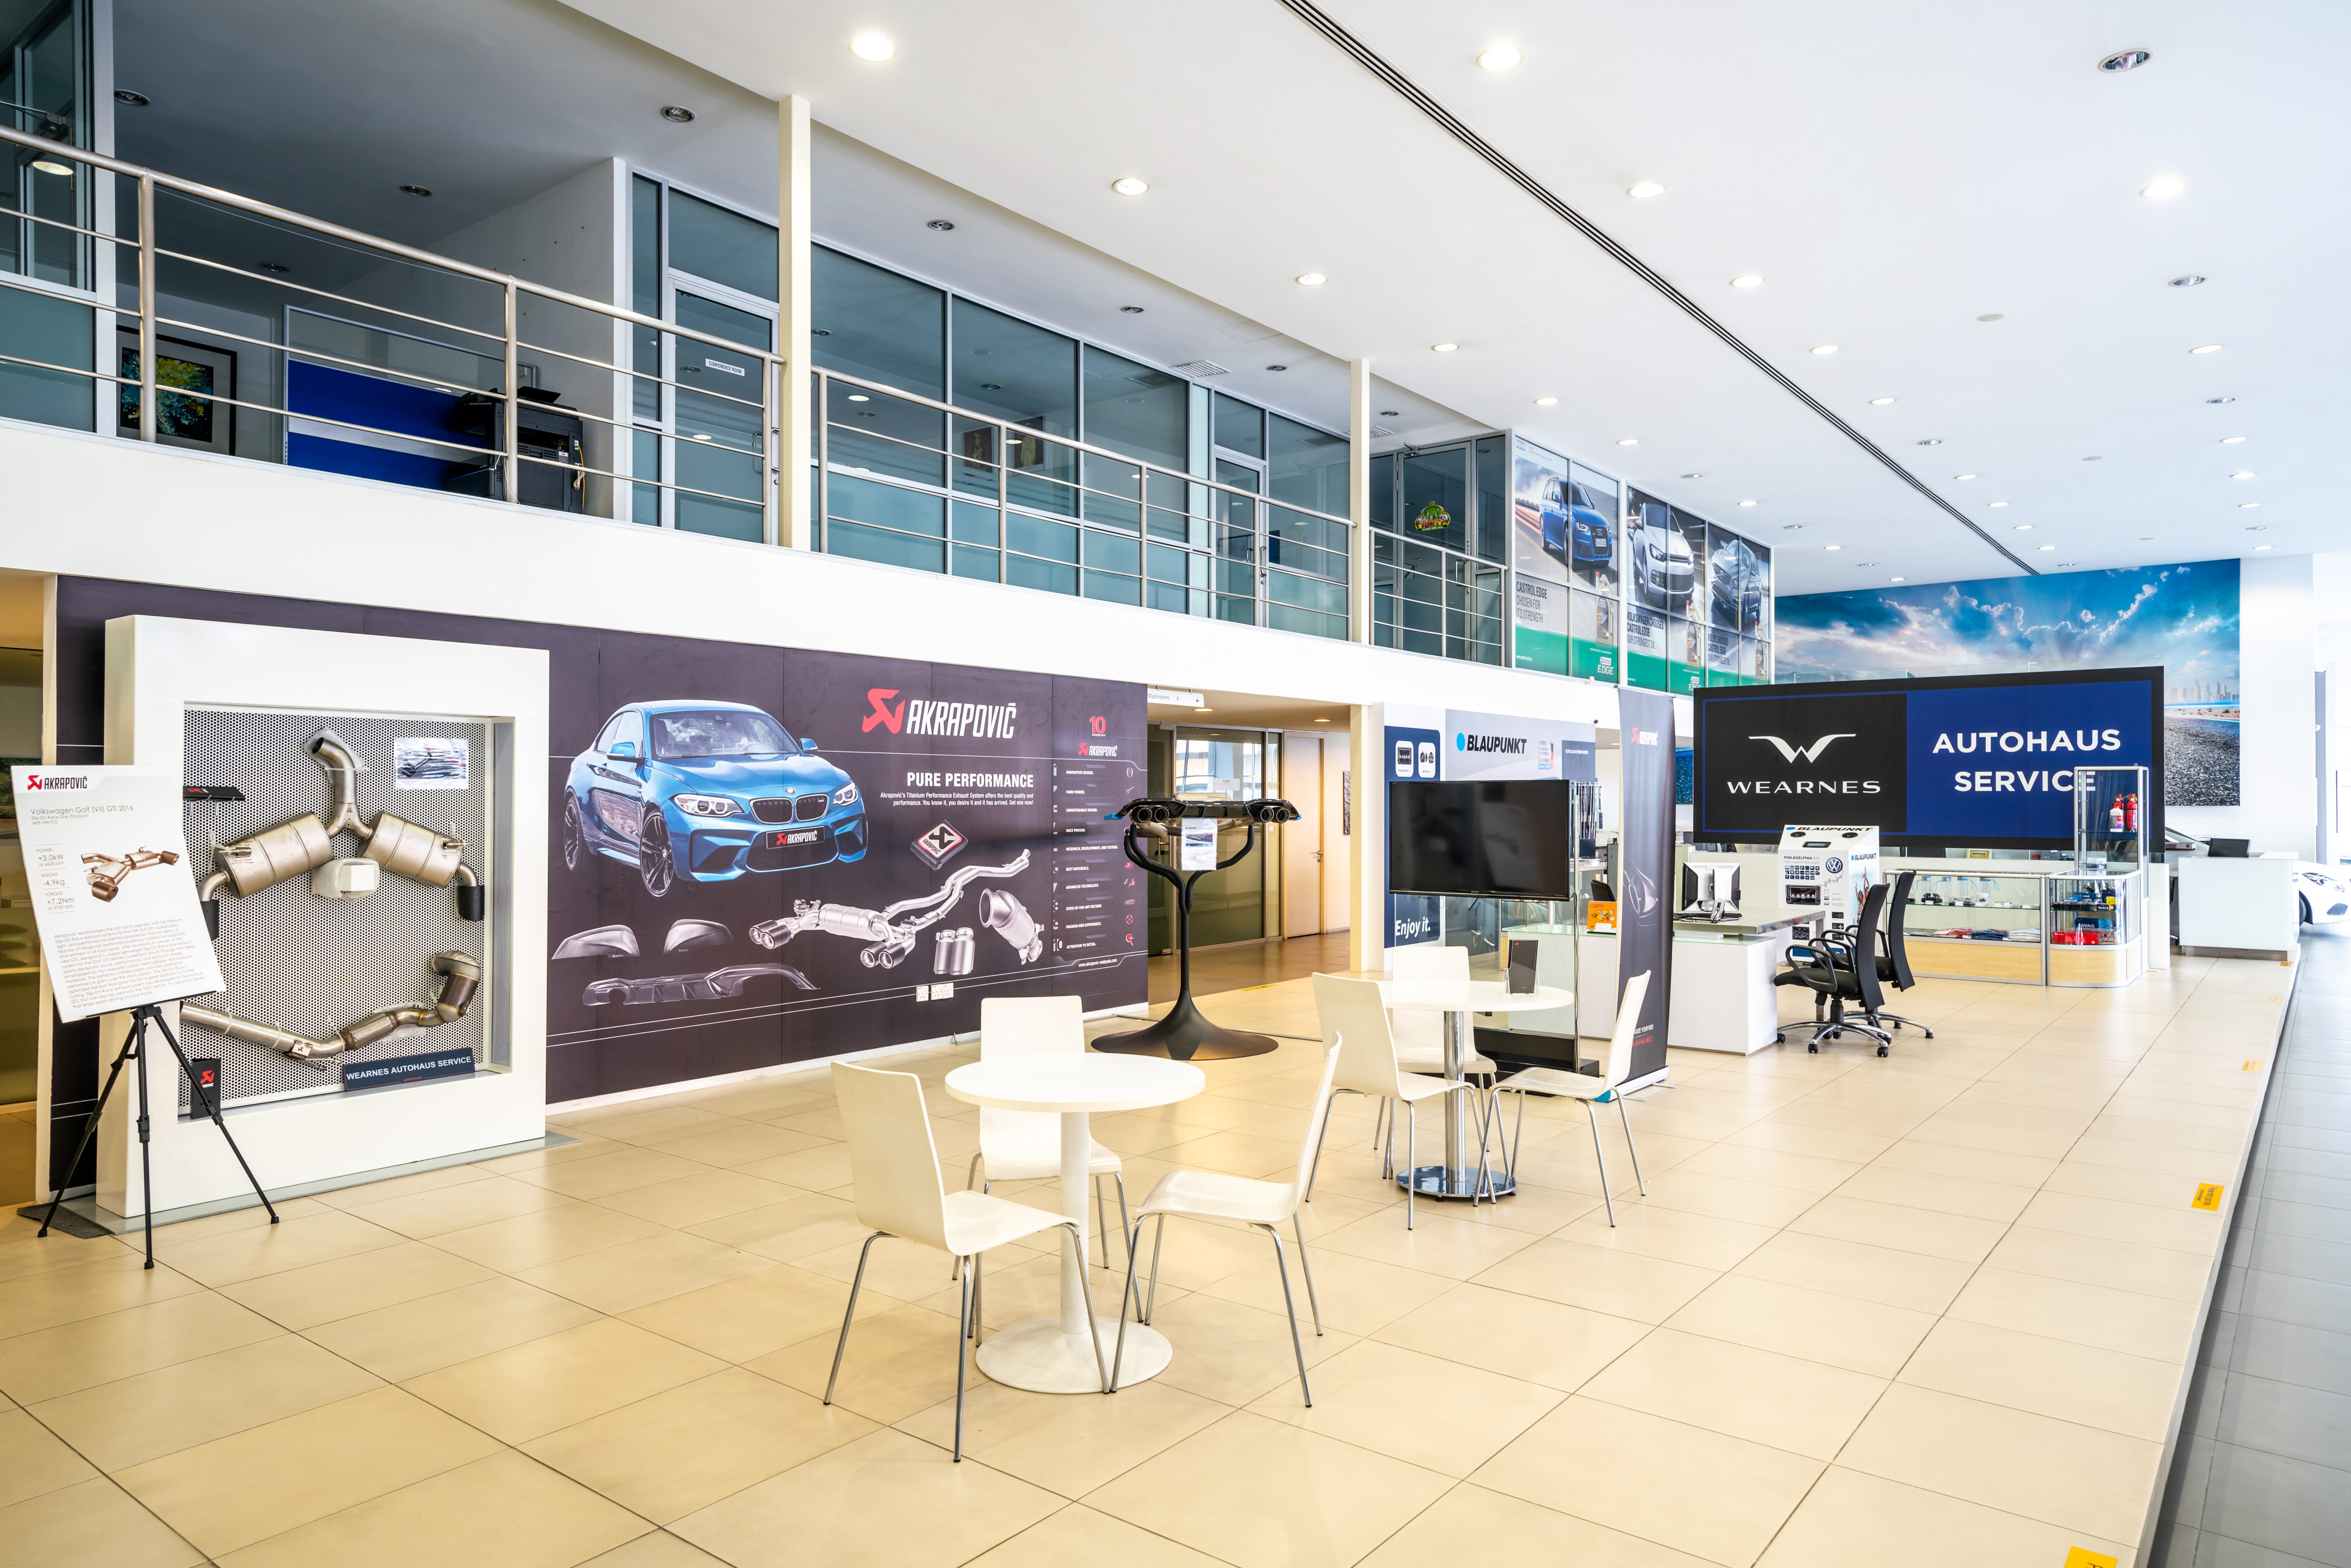 Wearnes autohaus independent one stop 4s car service centre videos wearnes autohaus located in segambut kl is an independent 4s service centre and might just be the place youve been looking for in addition to regular car solutioingenieria Image collections